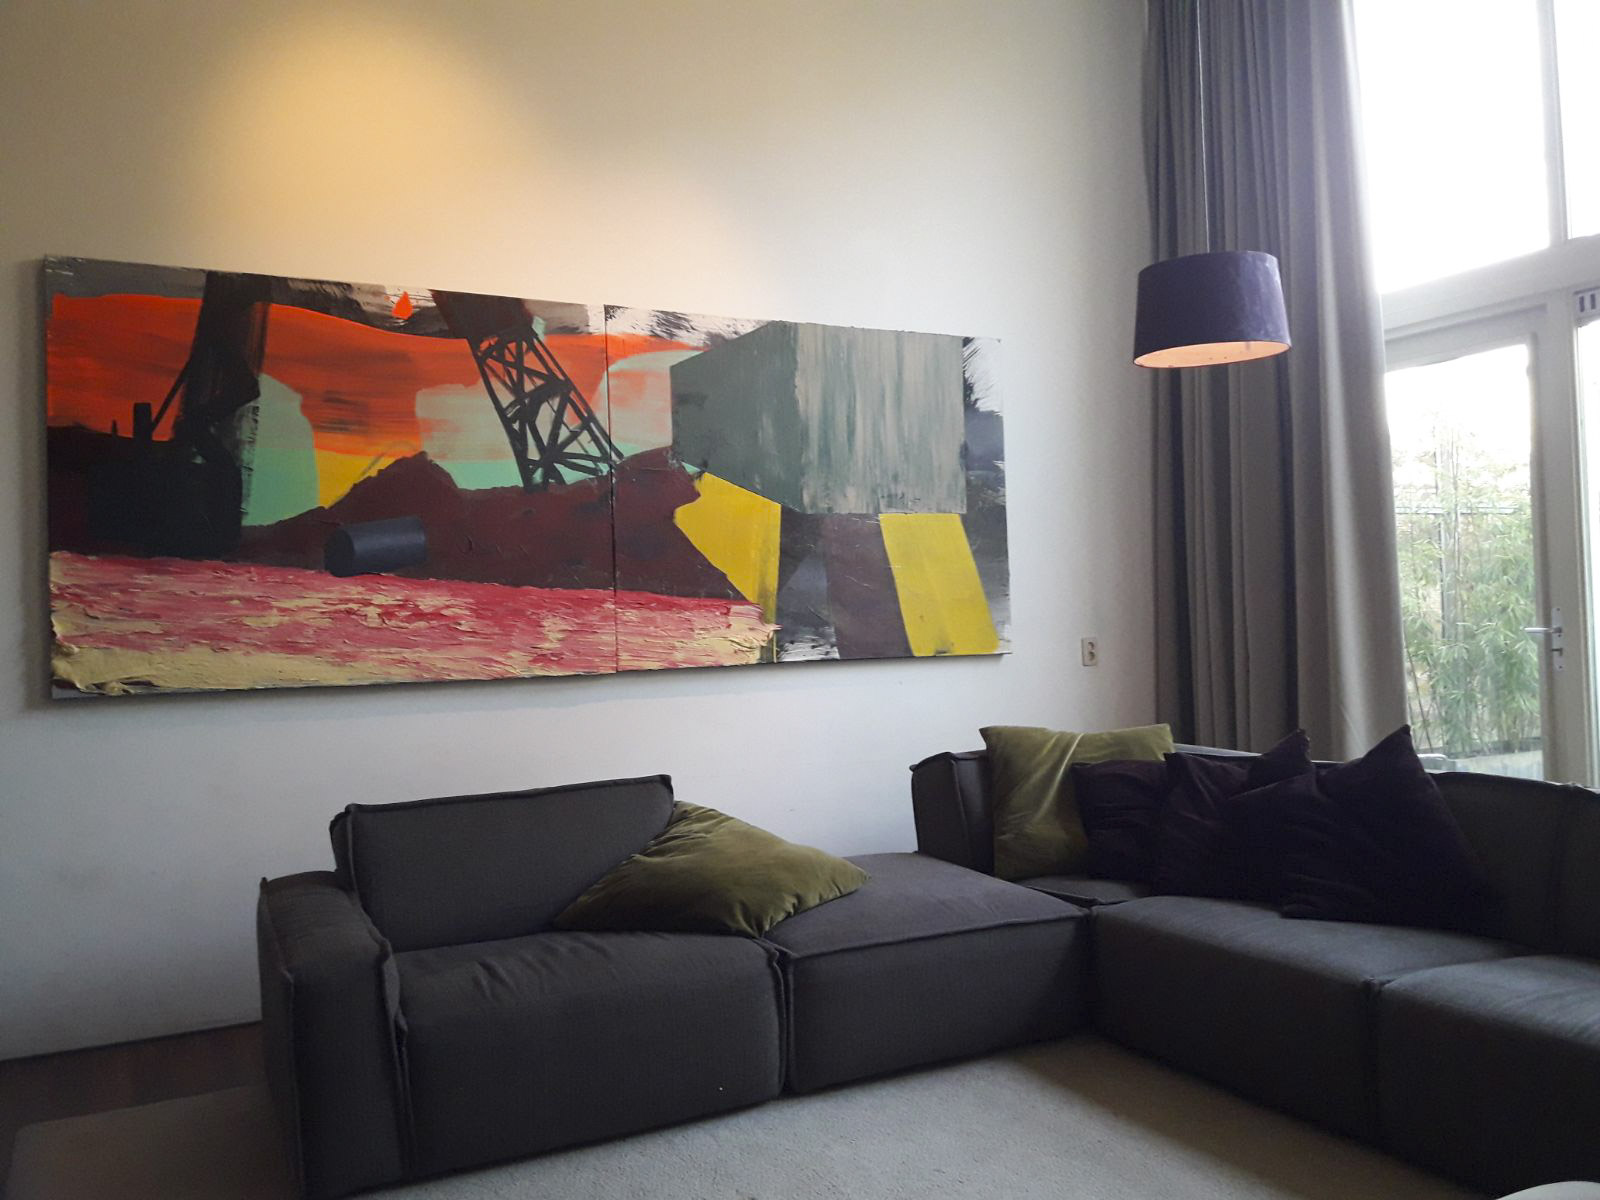 art in interior - living room 01 | sasja hagens.jpg